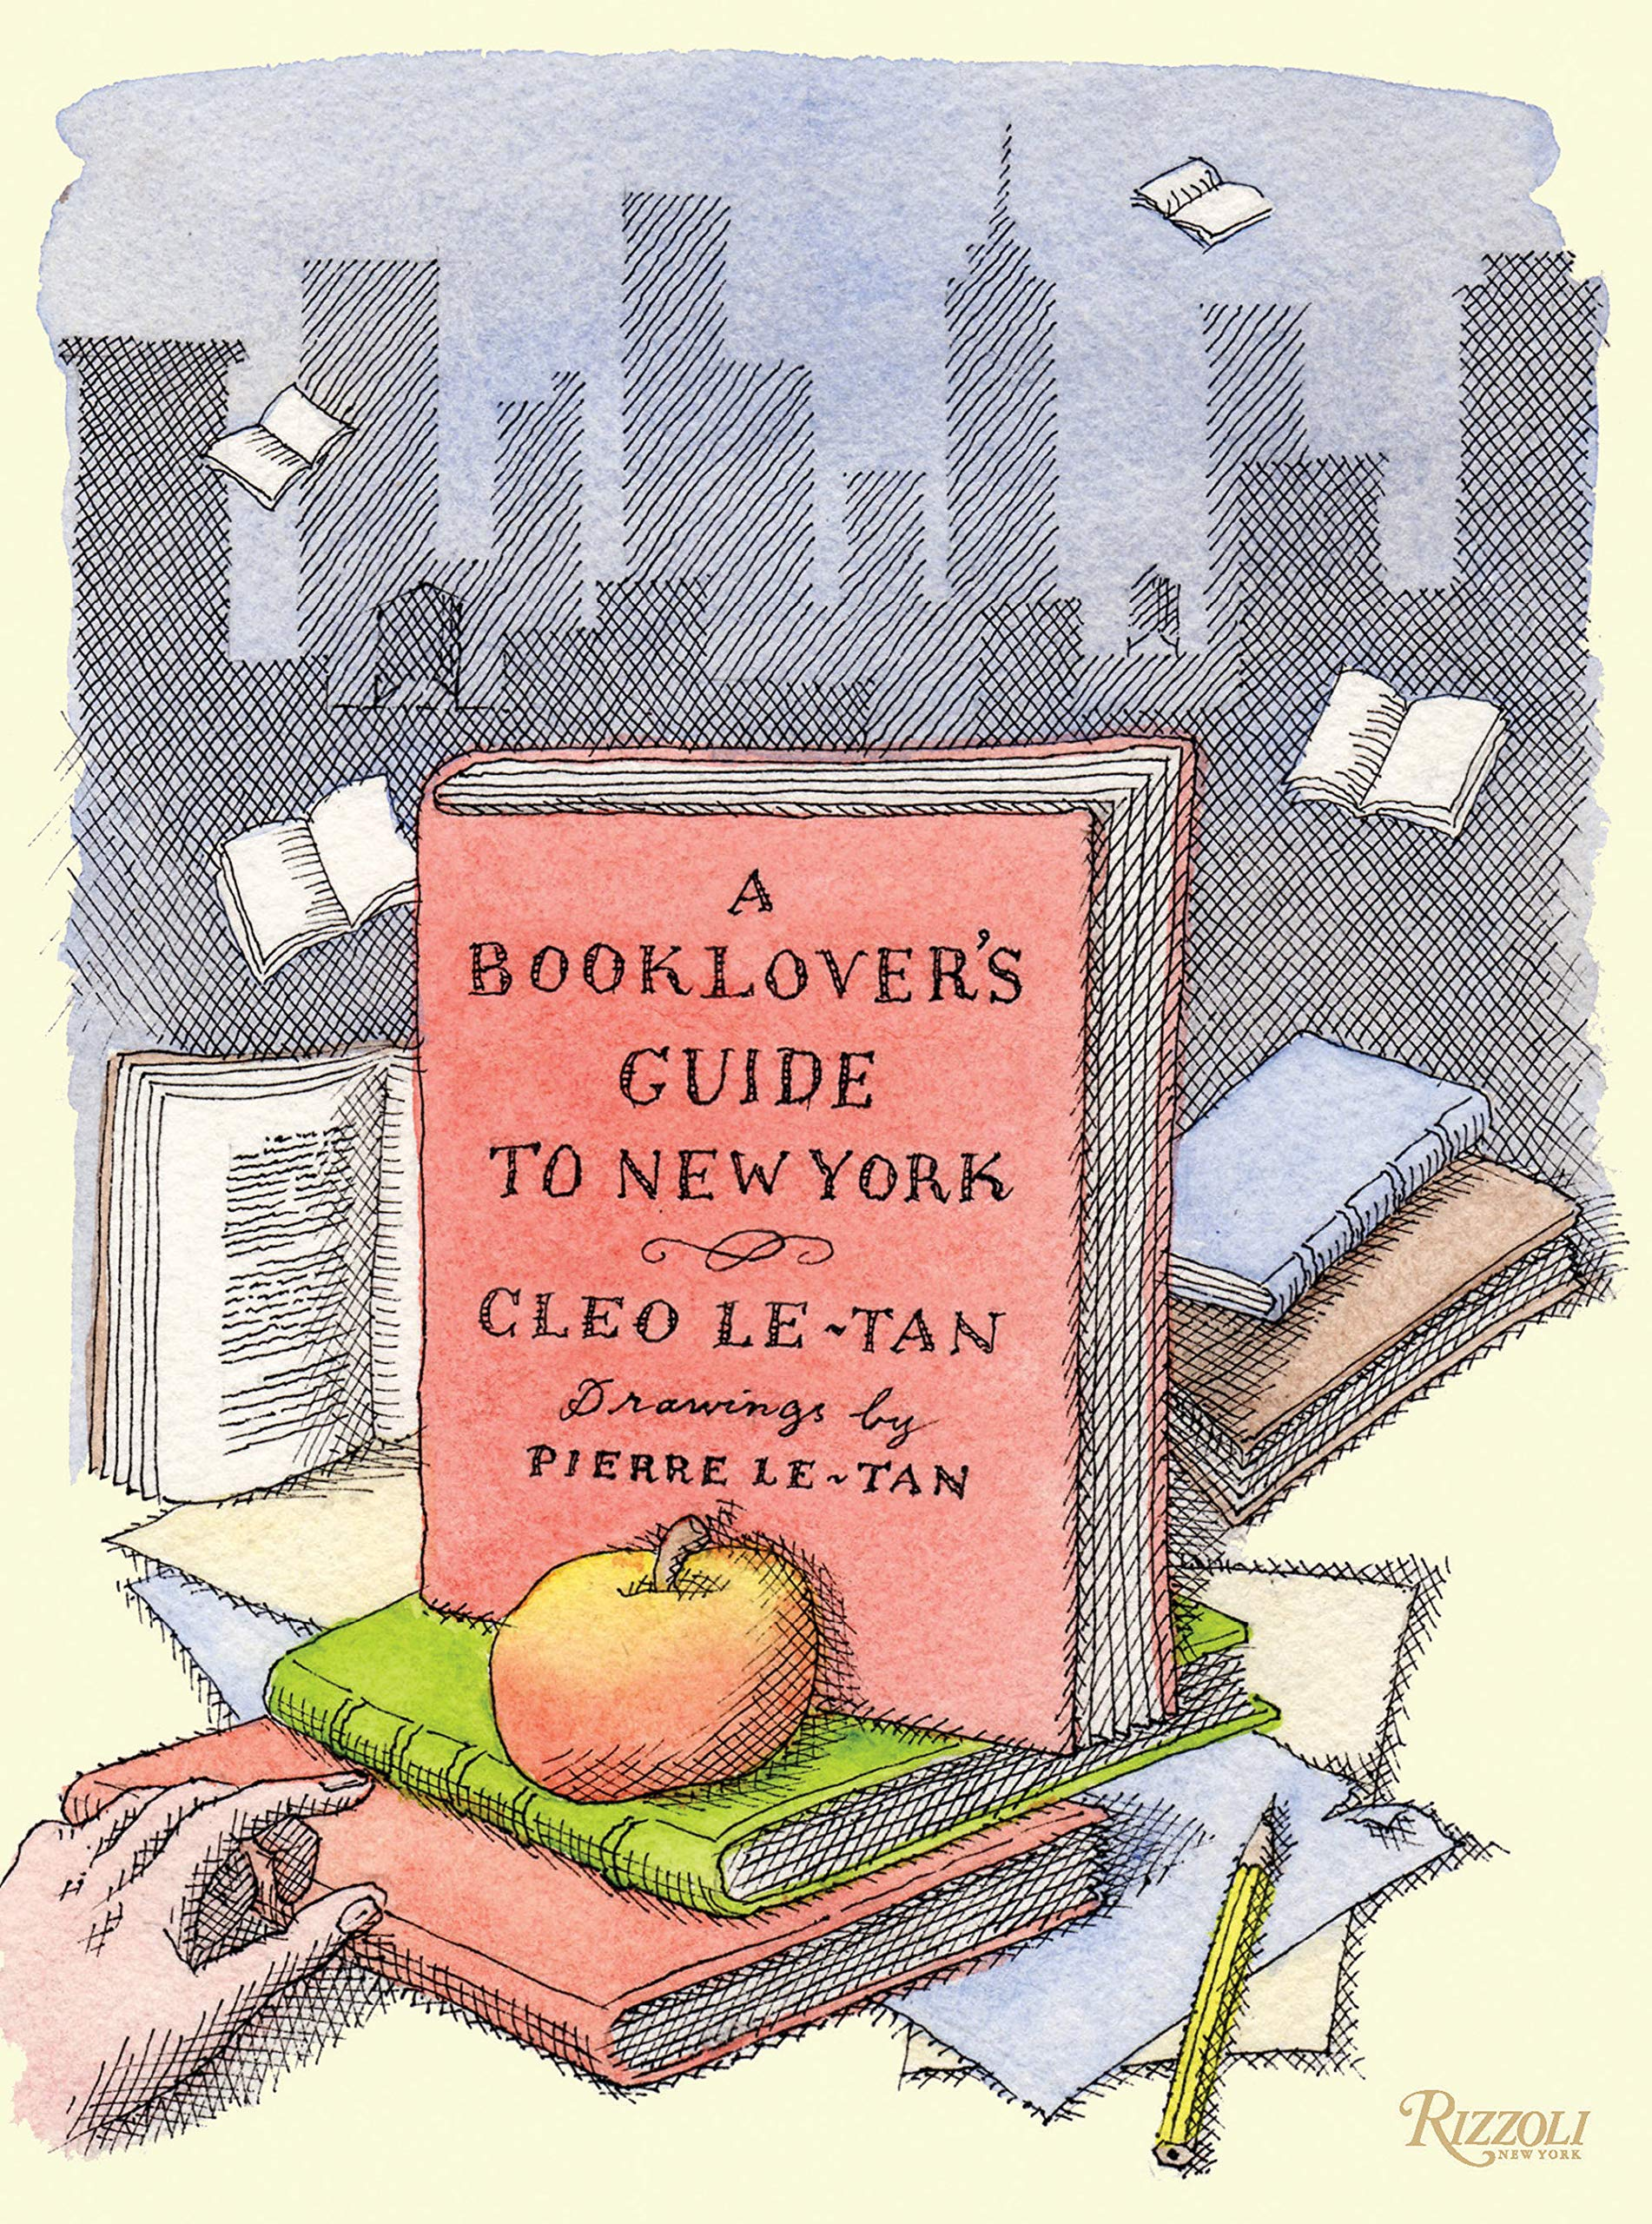 A Booklover's Guide to New York by Rizzoli